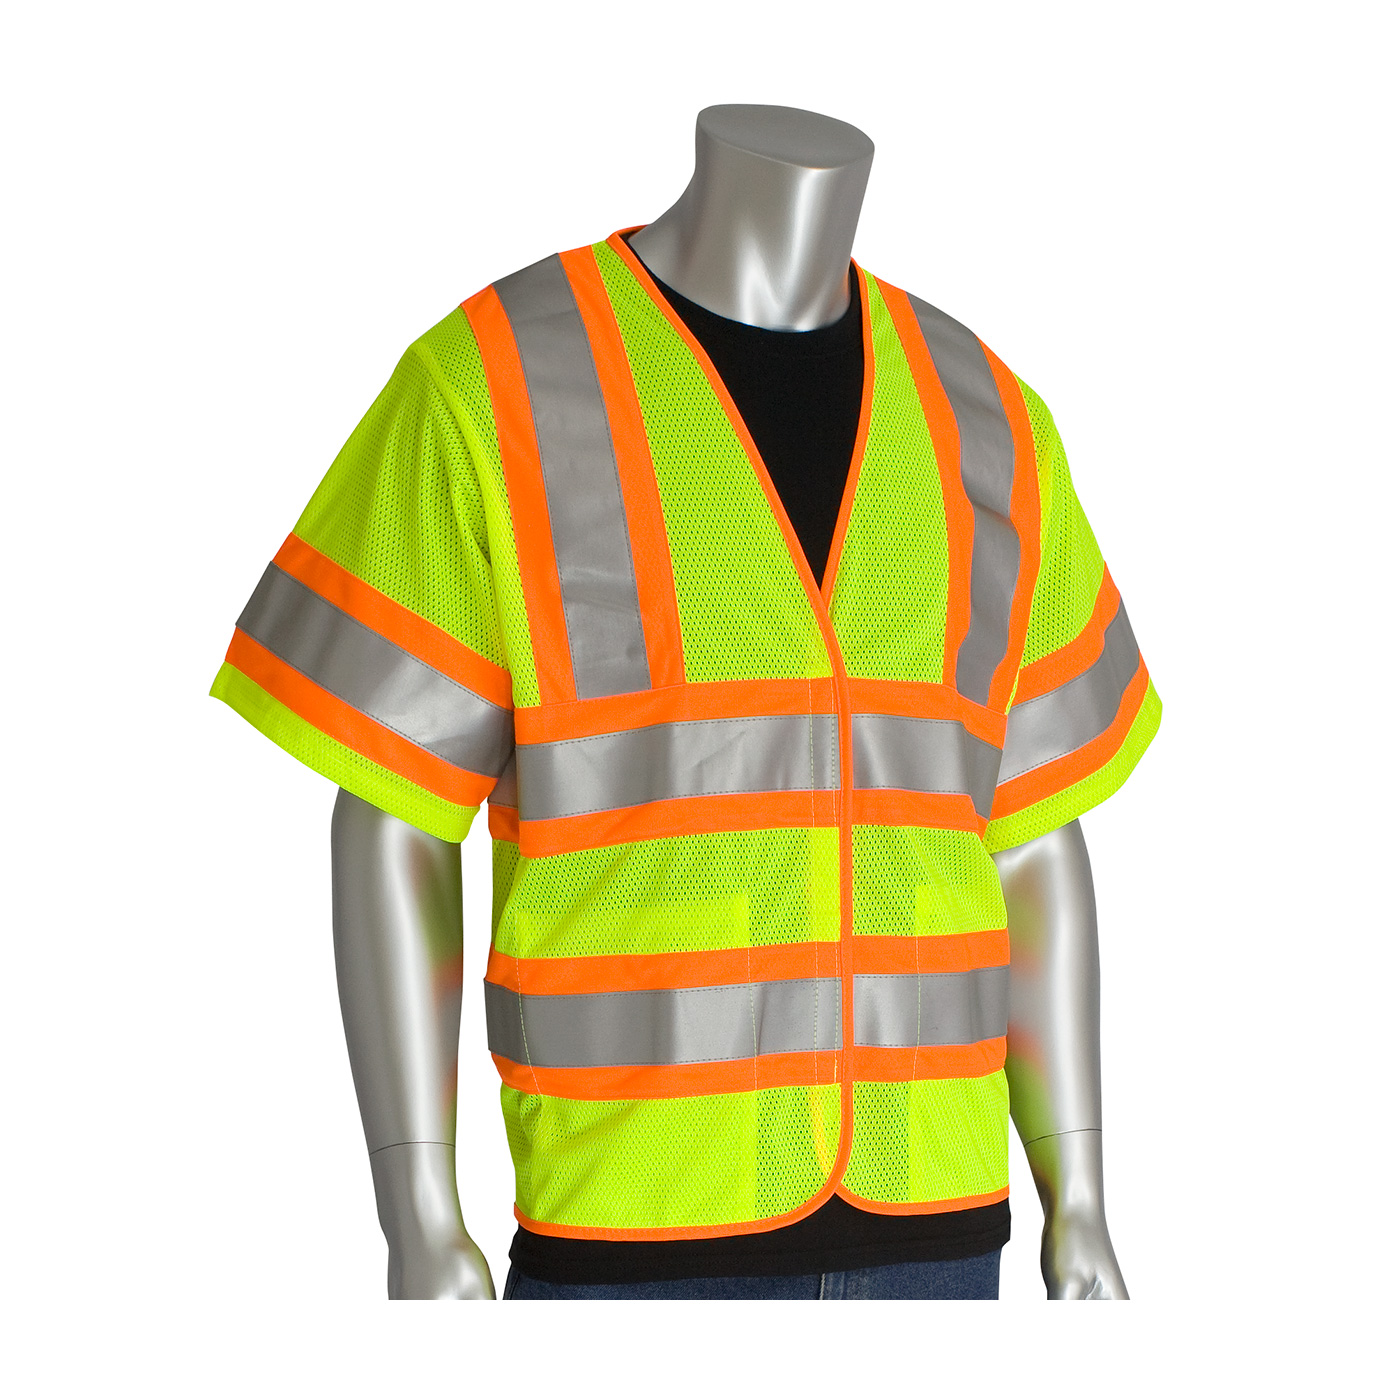 #305-HSVPFR PIP®  Flame Retardant Two-Tone Safety Vest - Class R3